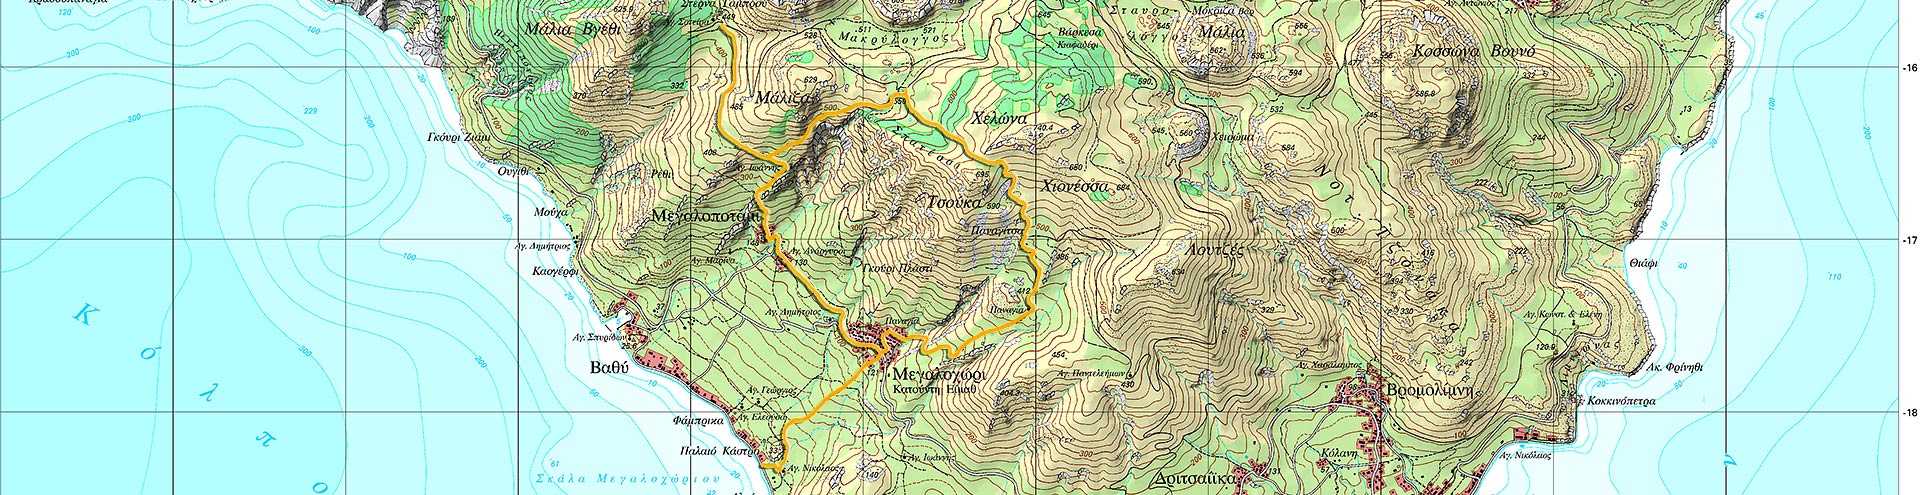 Hiking route D on Methana